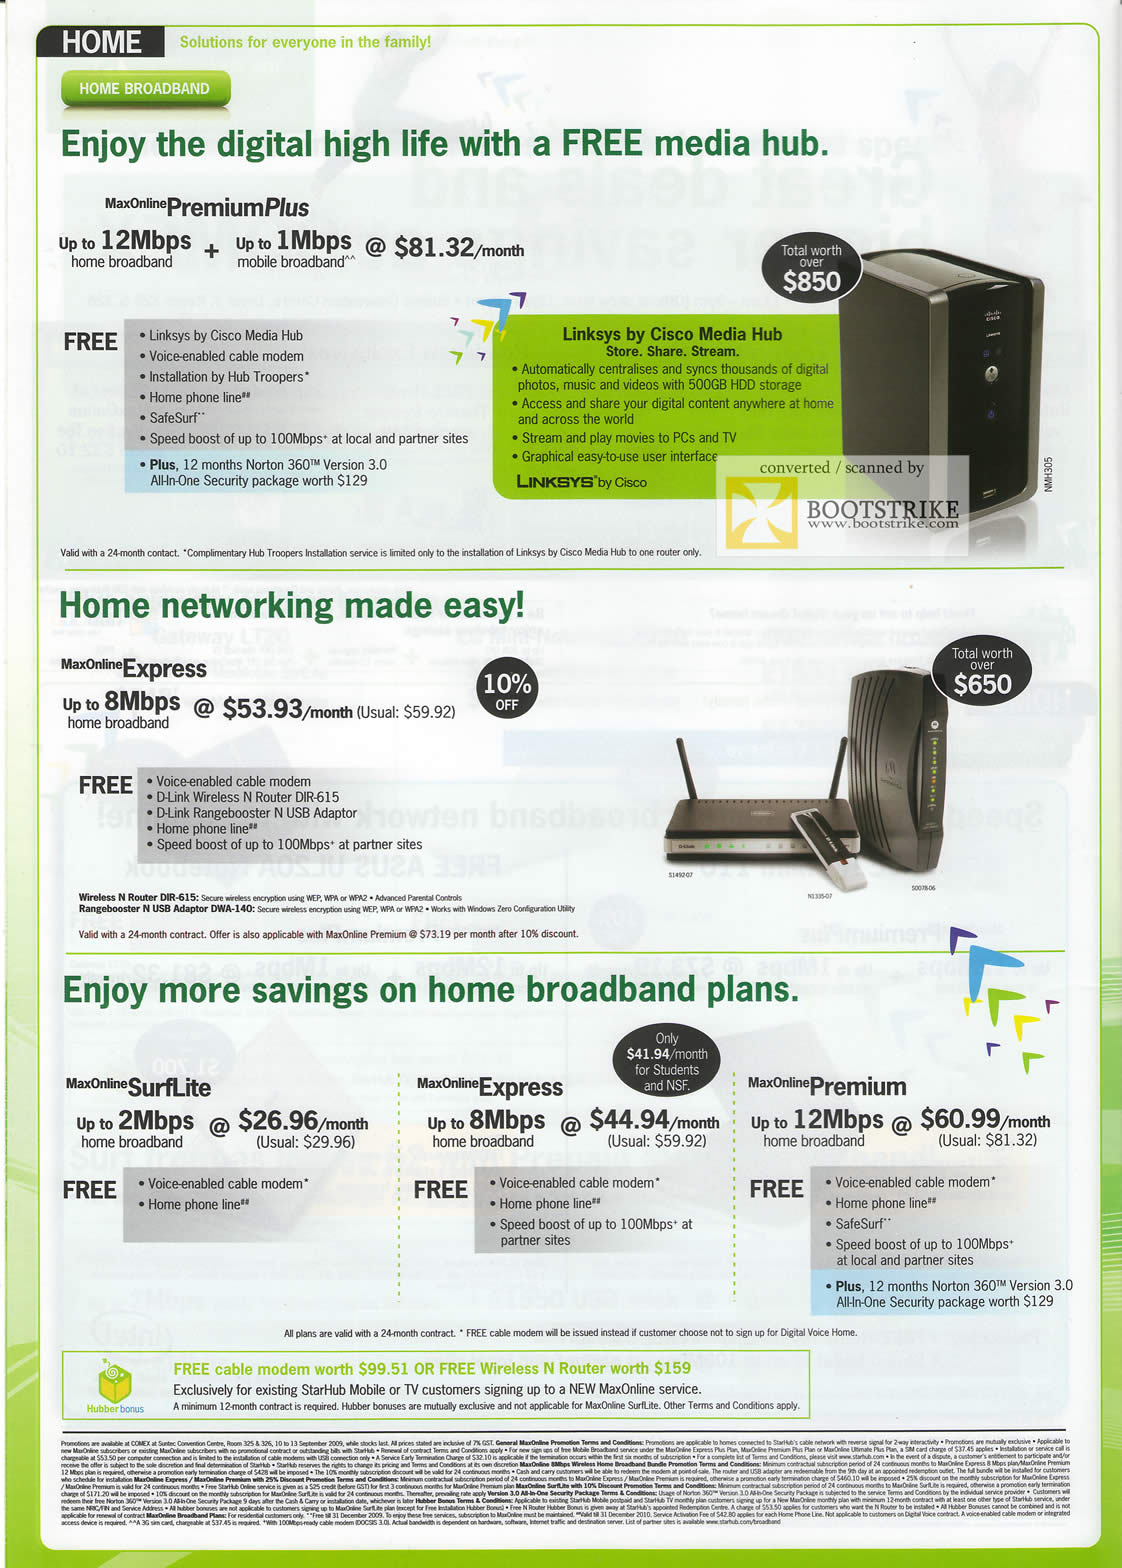 Comex 2009 price list image brochure of Starhub Broadband Premium Plus Linksys Cisco Media Hub Wireless N